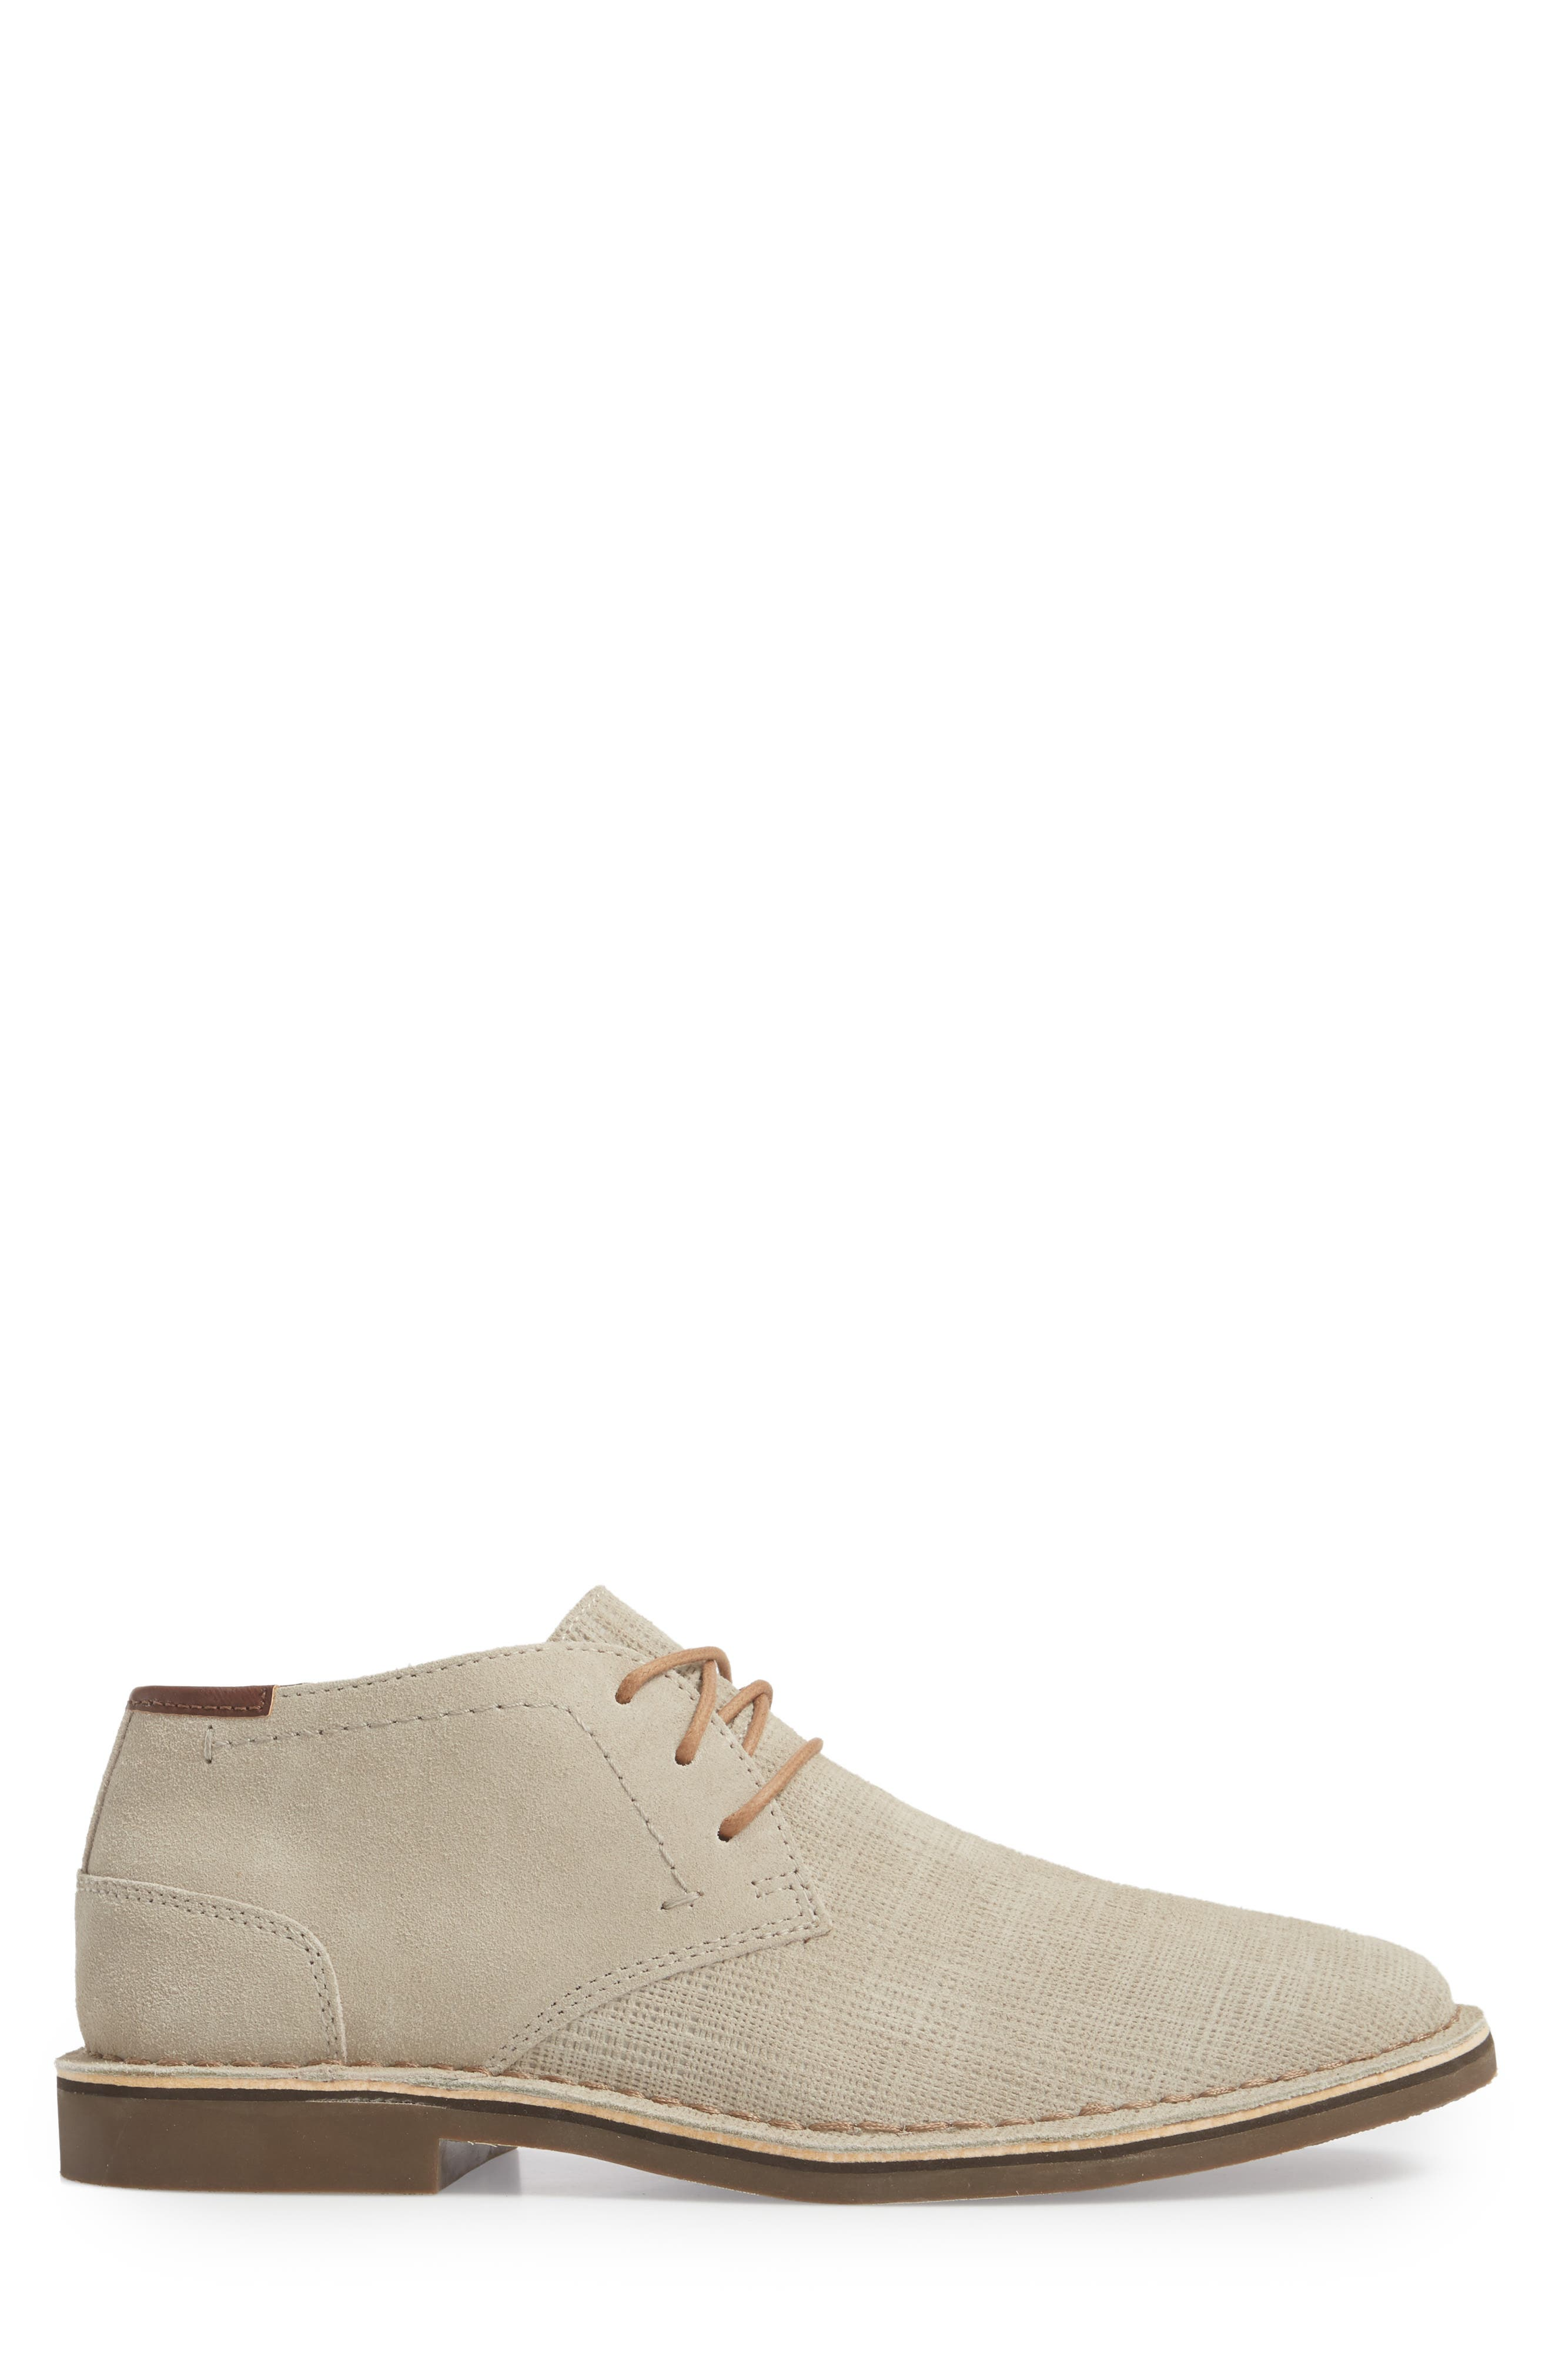 Desert Sun Textured Chukka Boot,                             Alternate thumbnail 6, color,